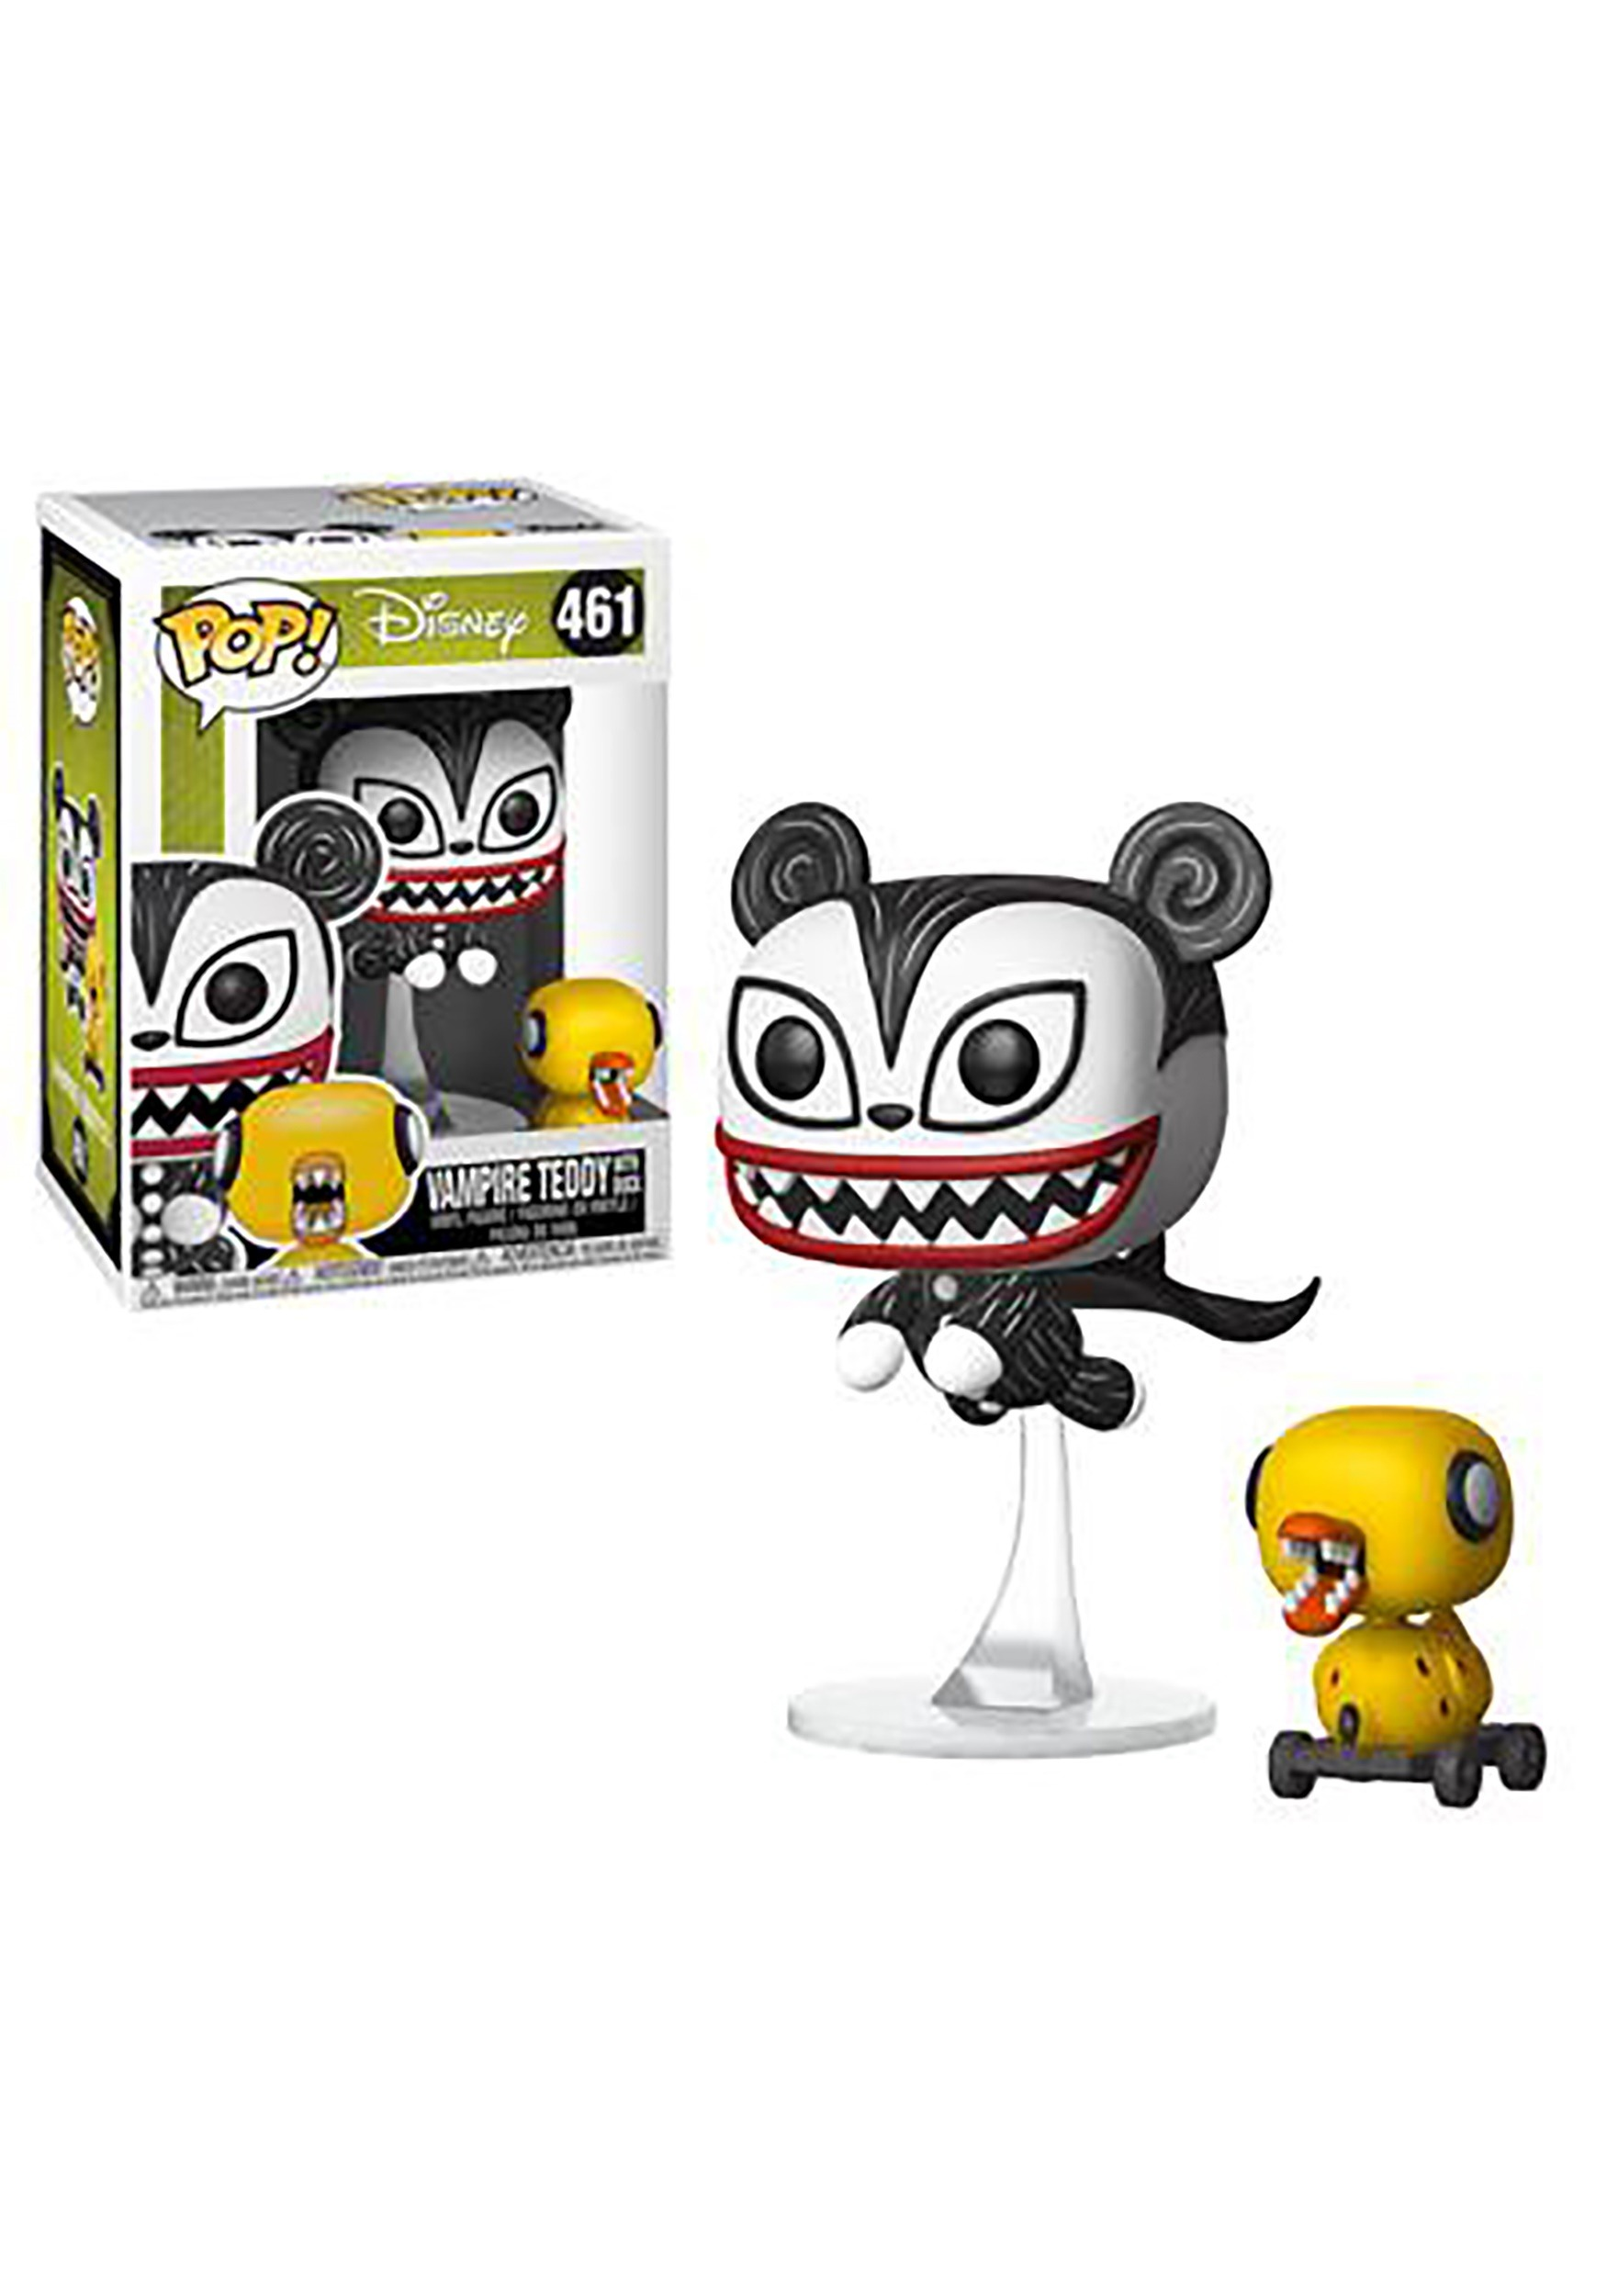 Pop! Disney: Nightmare Before Christmas - Vampire Teddy w/ Undead Duck